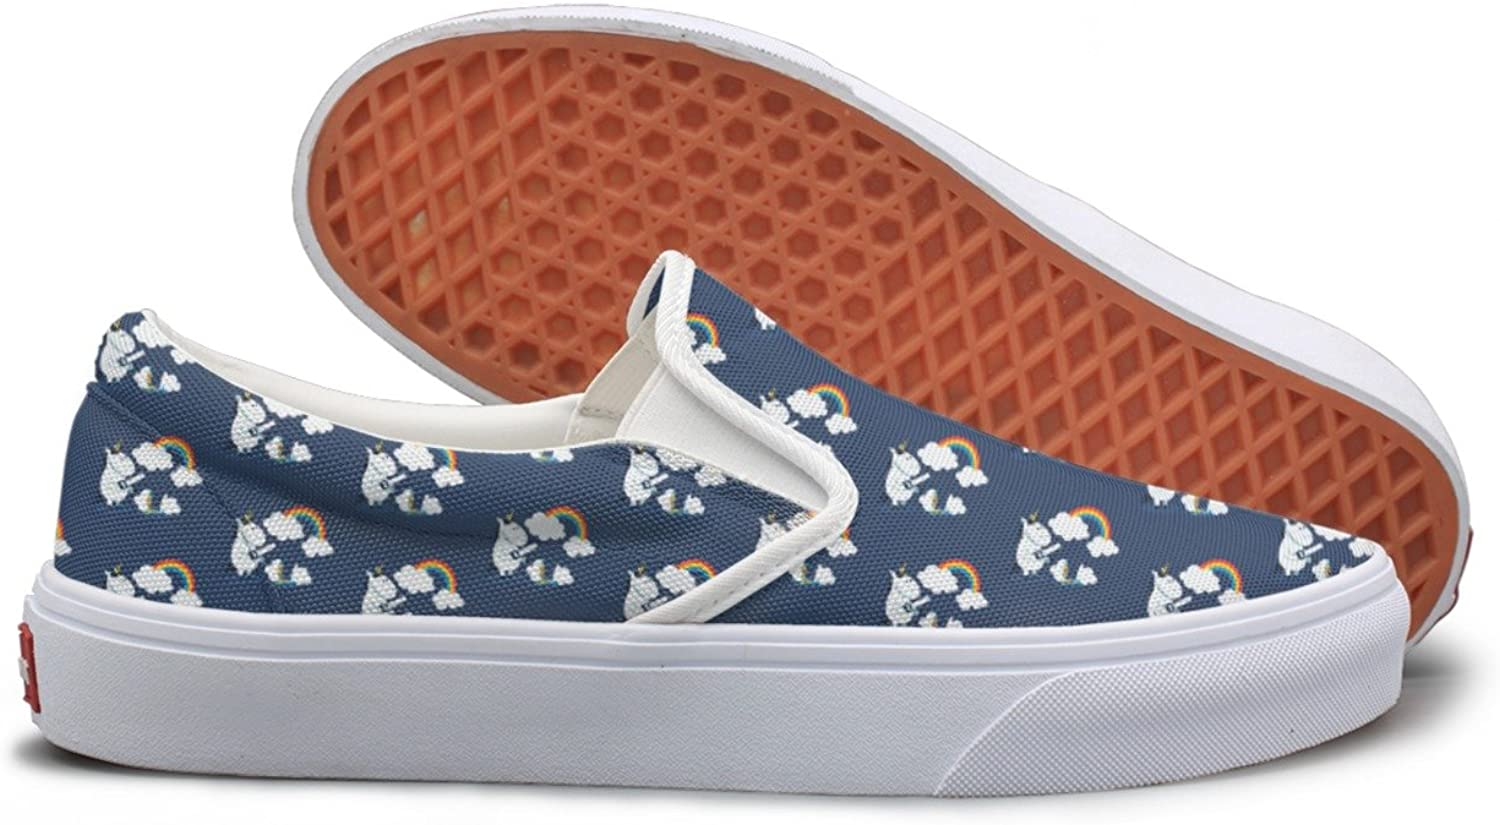 Lalige Unicorn Sawing The Cloud Womens Funny Canvas Slip-on Travel shoes